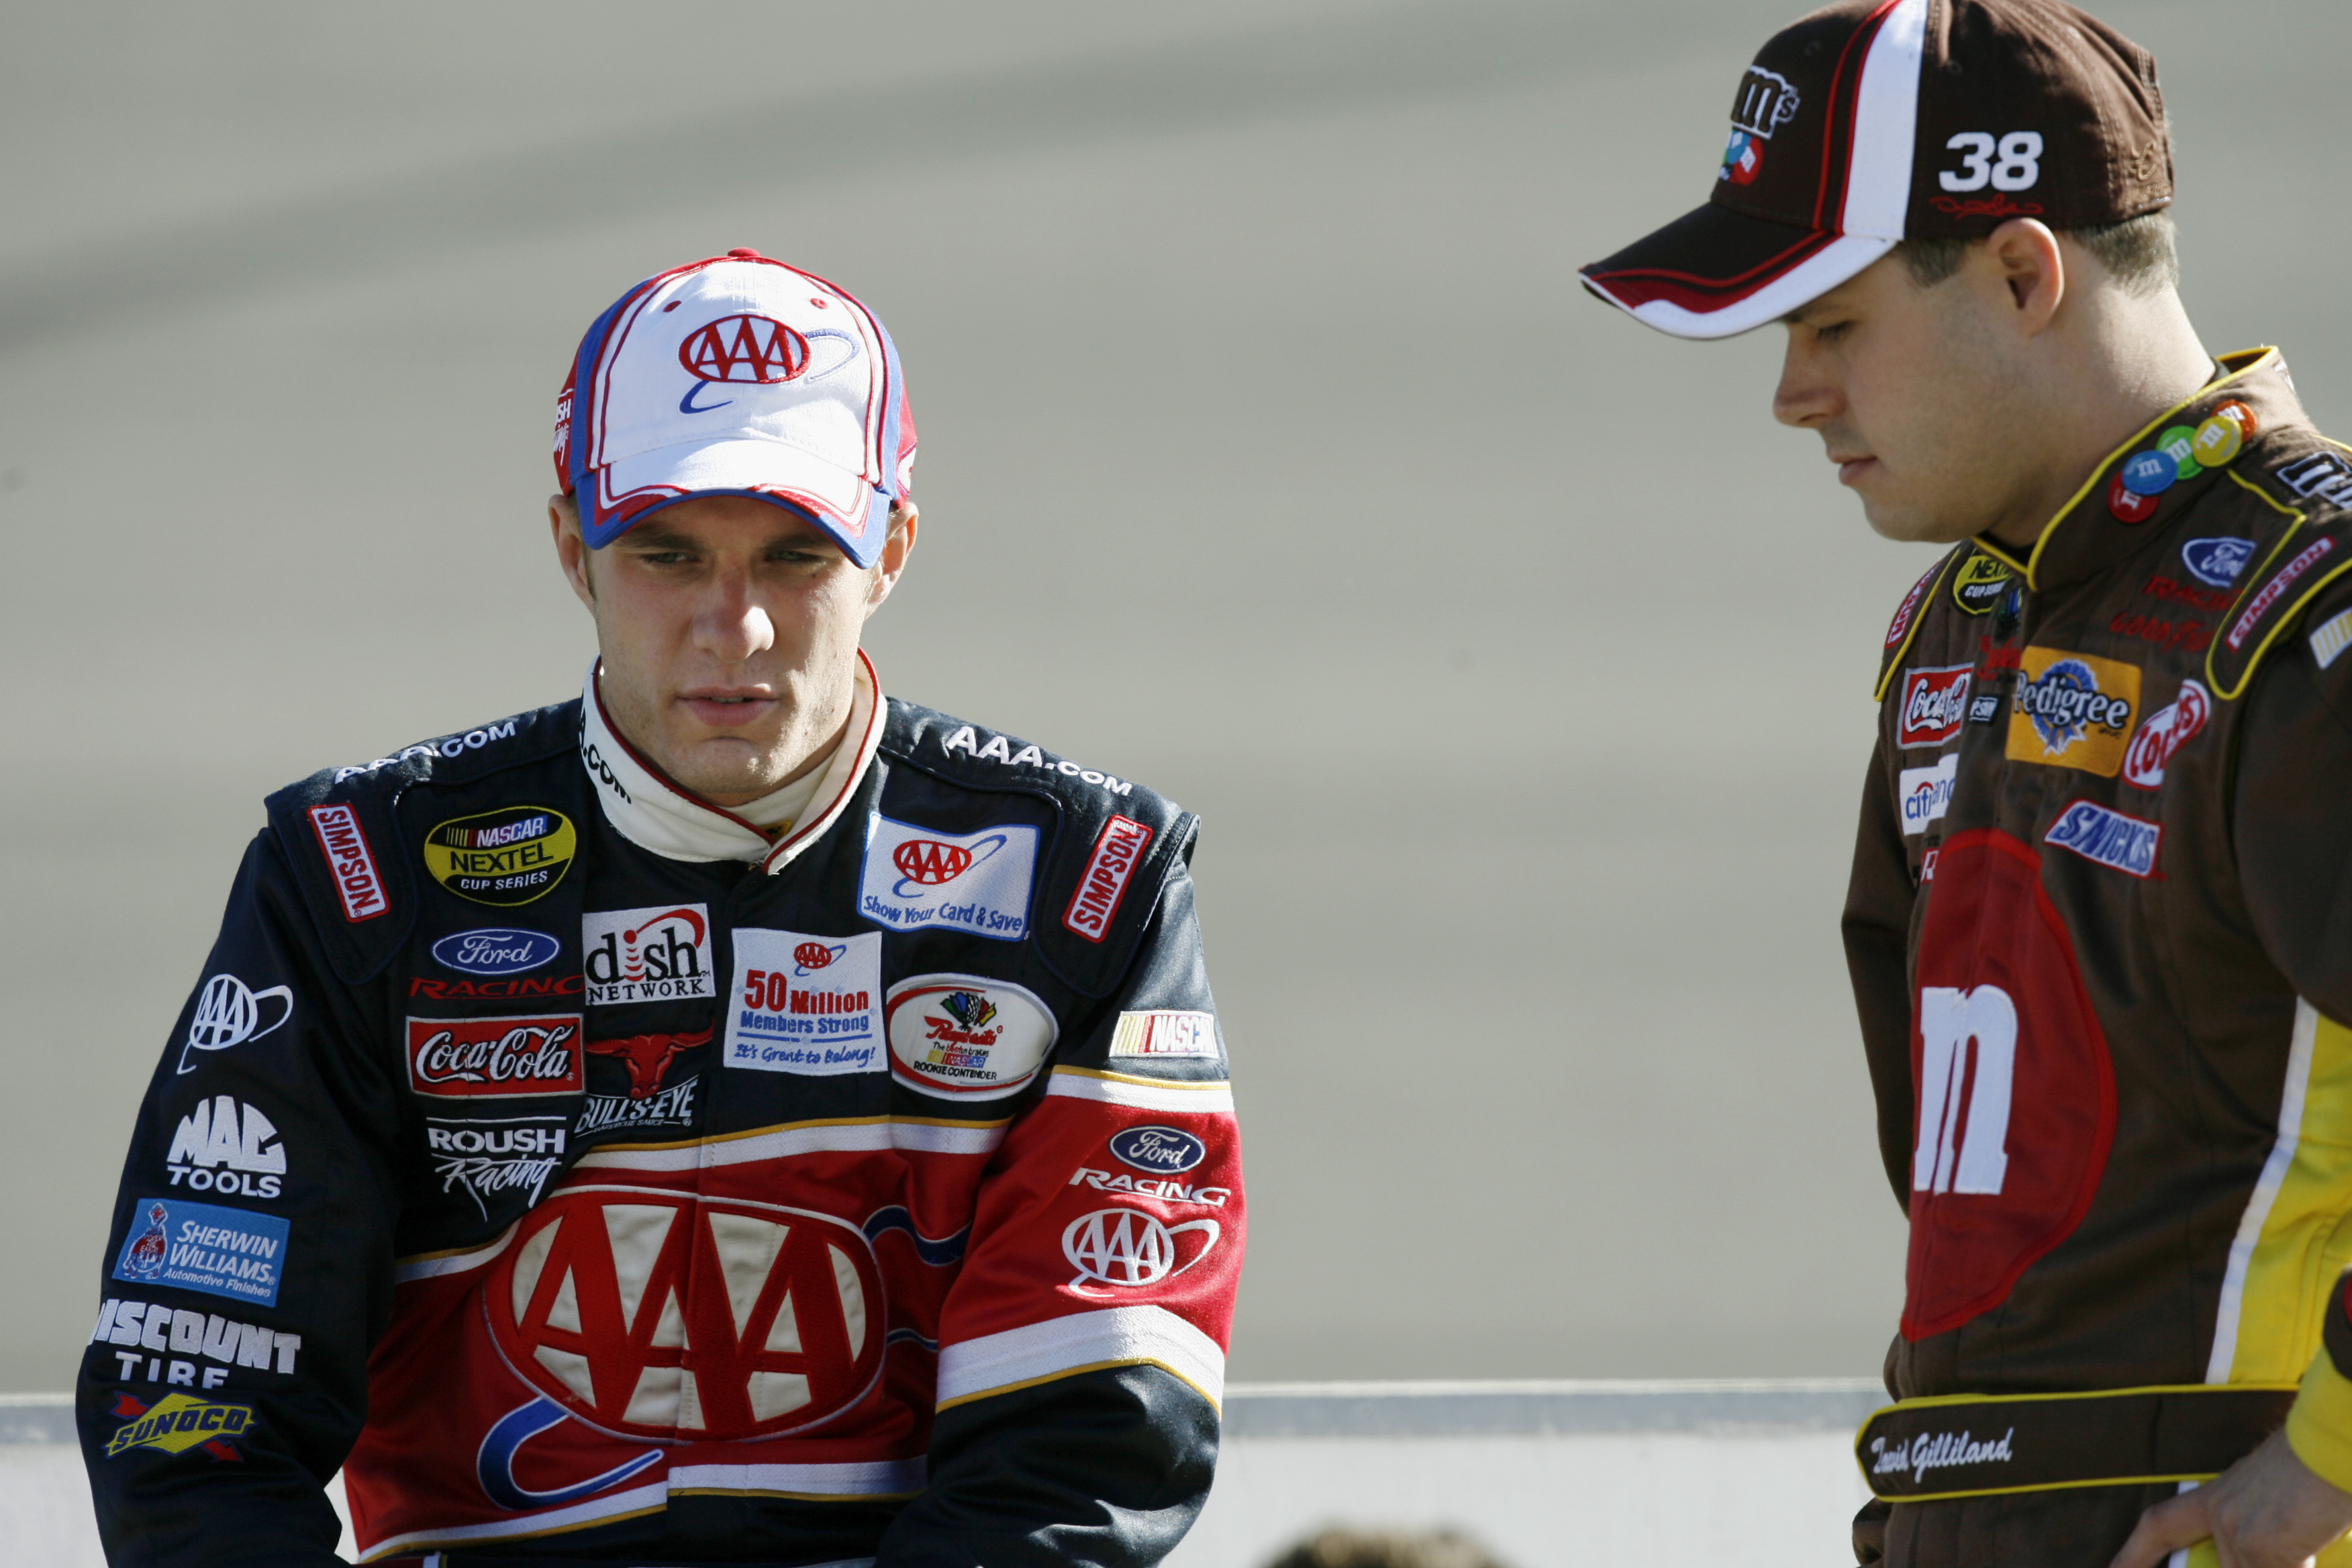 Ragan and Gilliland returning to Front Row in 2014